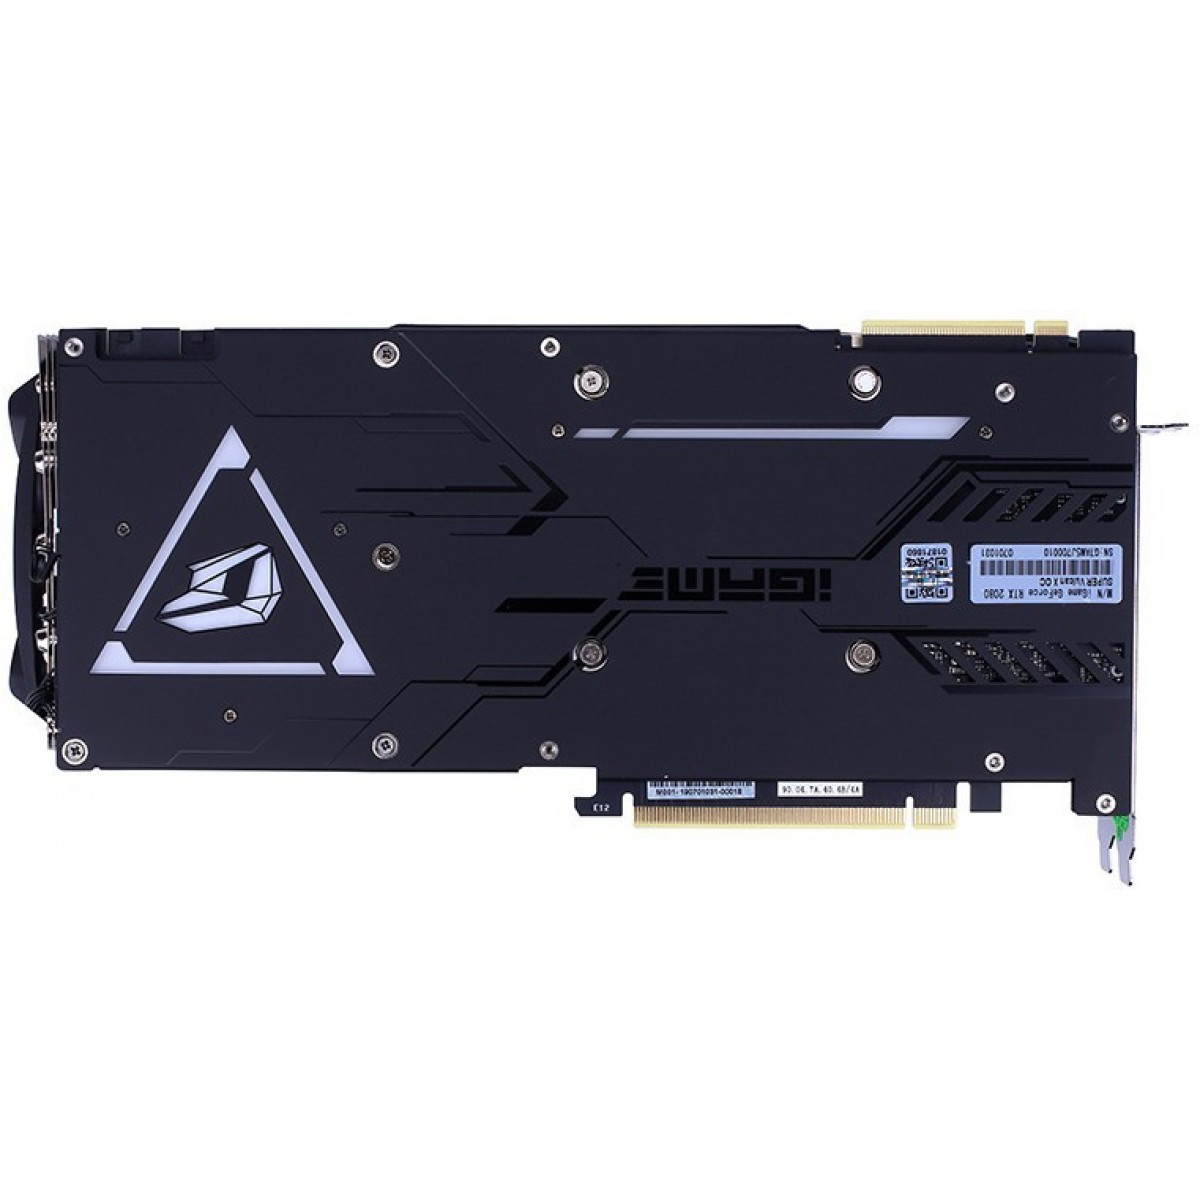 Placa de Vídeo Colorful iGame GeForce RTX 2080 Super Vulcan X OC-V, 8GB GDDR6, 256Bit